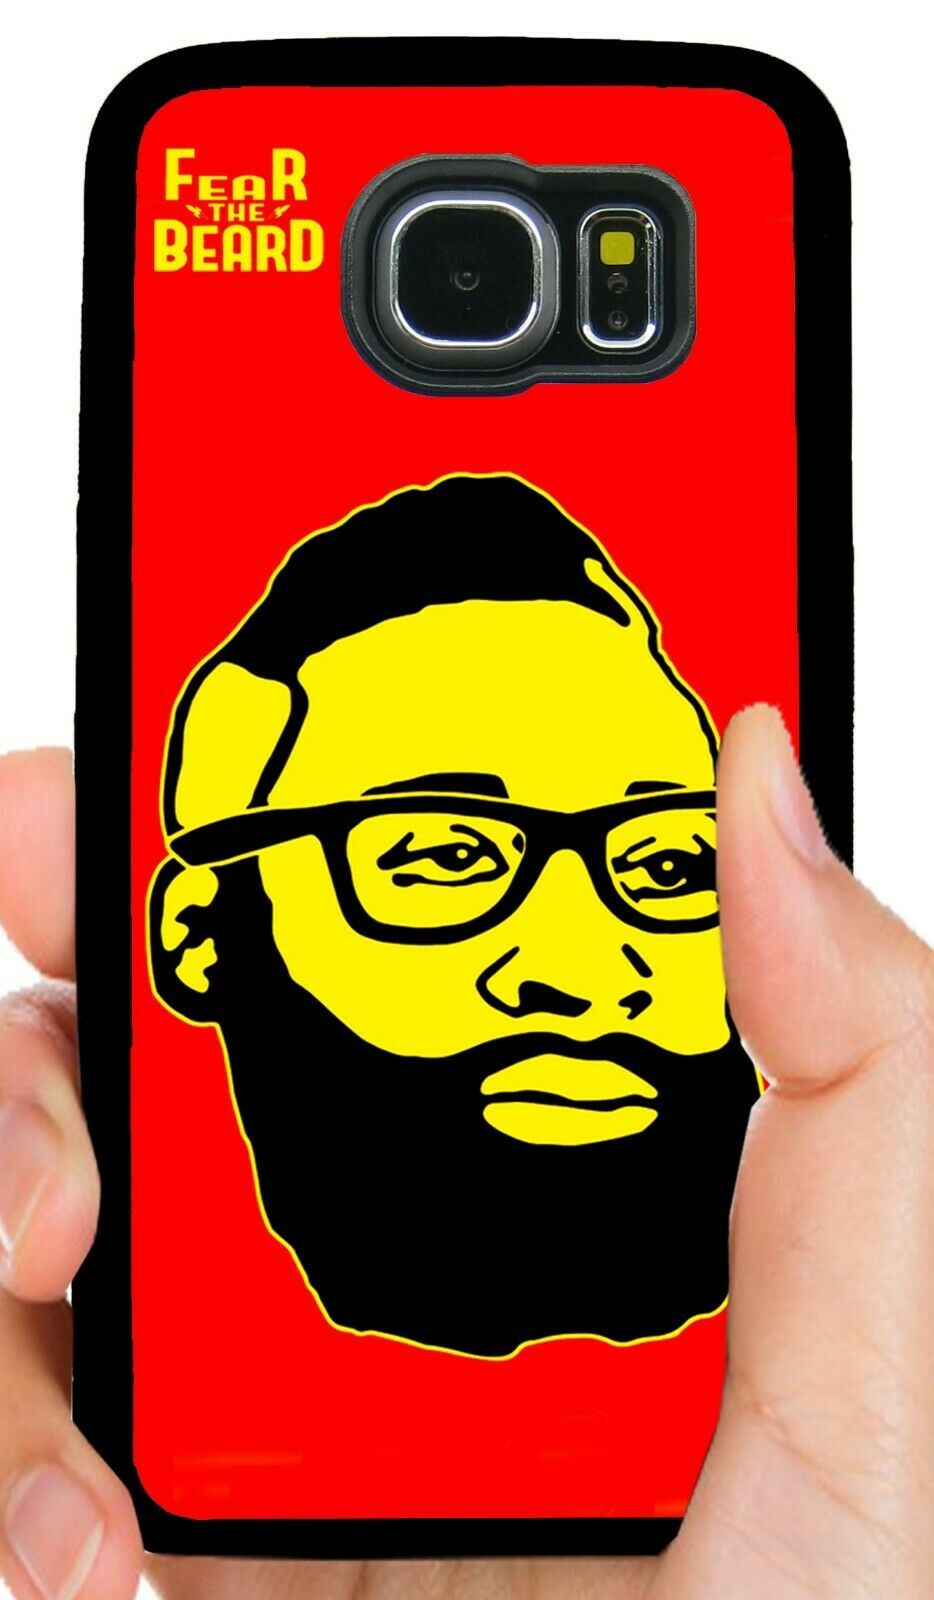 JAMES HARDEN ROCKETS PHONE CASE FOR SAMSUNG NOTE GALAXY S5 S6 S7 S8 S9 S10 PLUS